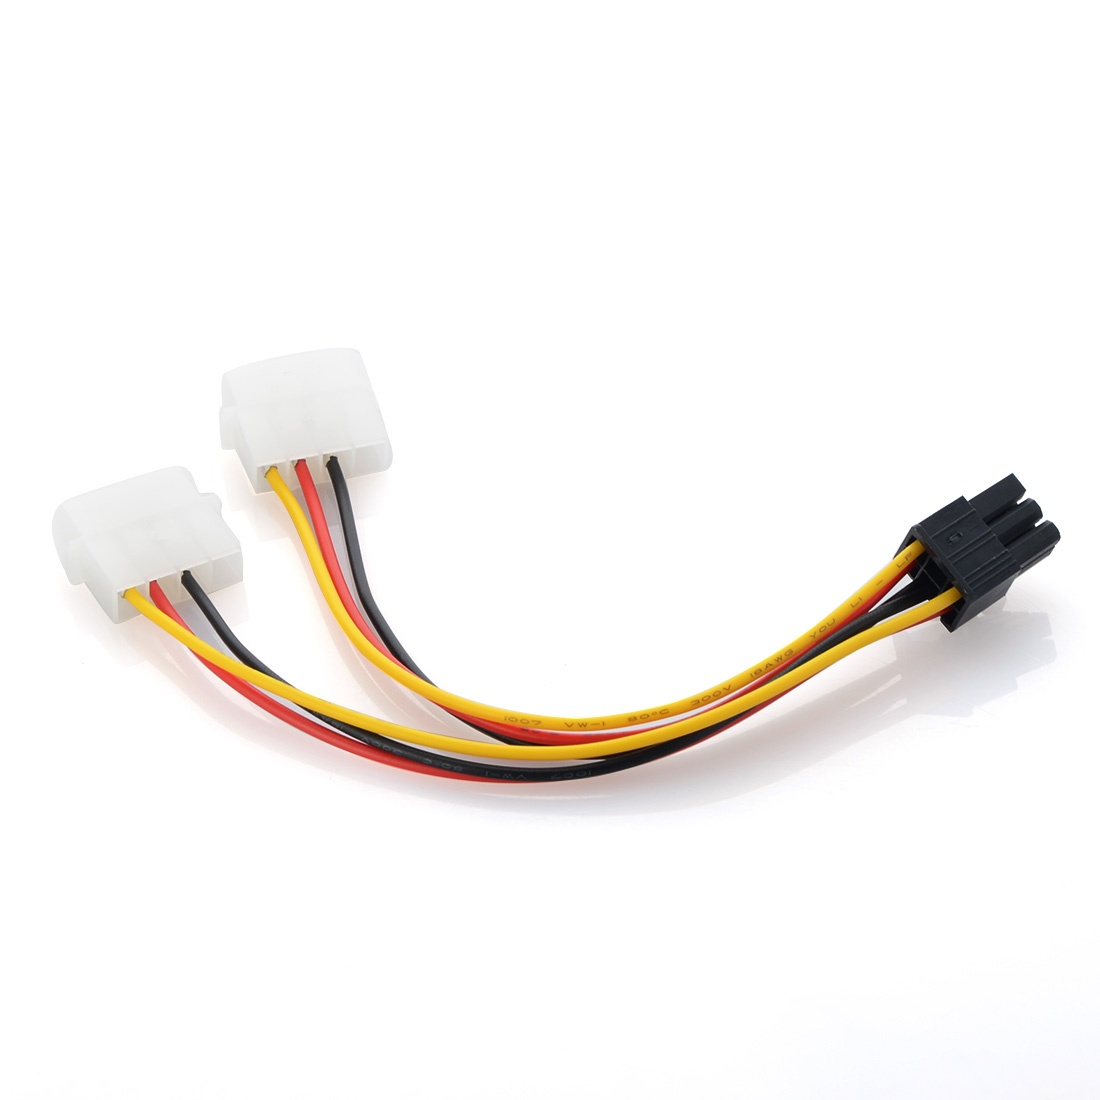 Double Big 4pin to 6pin power adapter cable PCI-E Graphics card External power cord